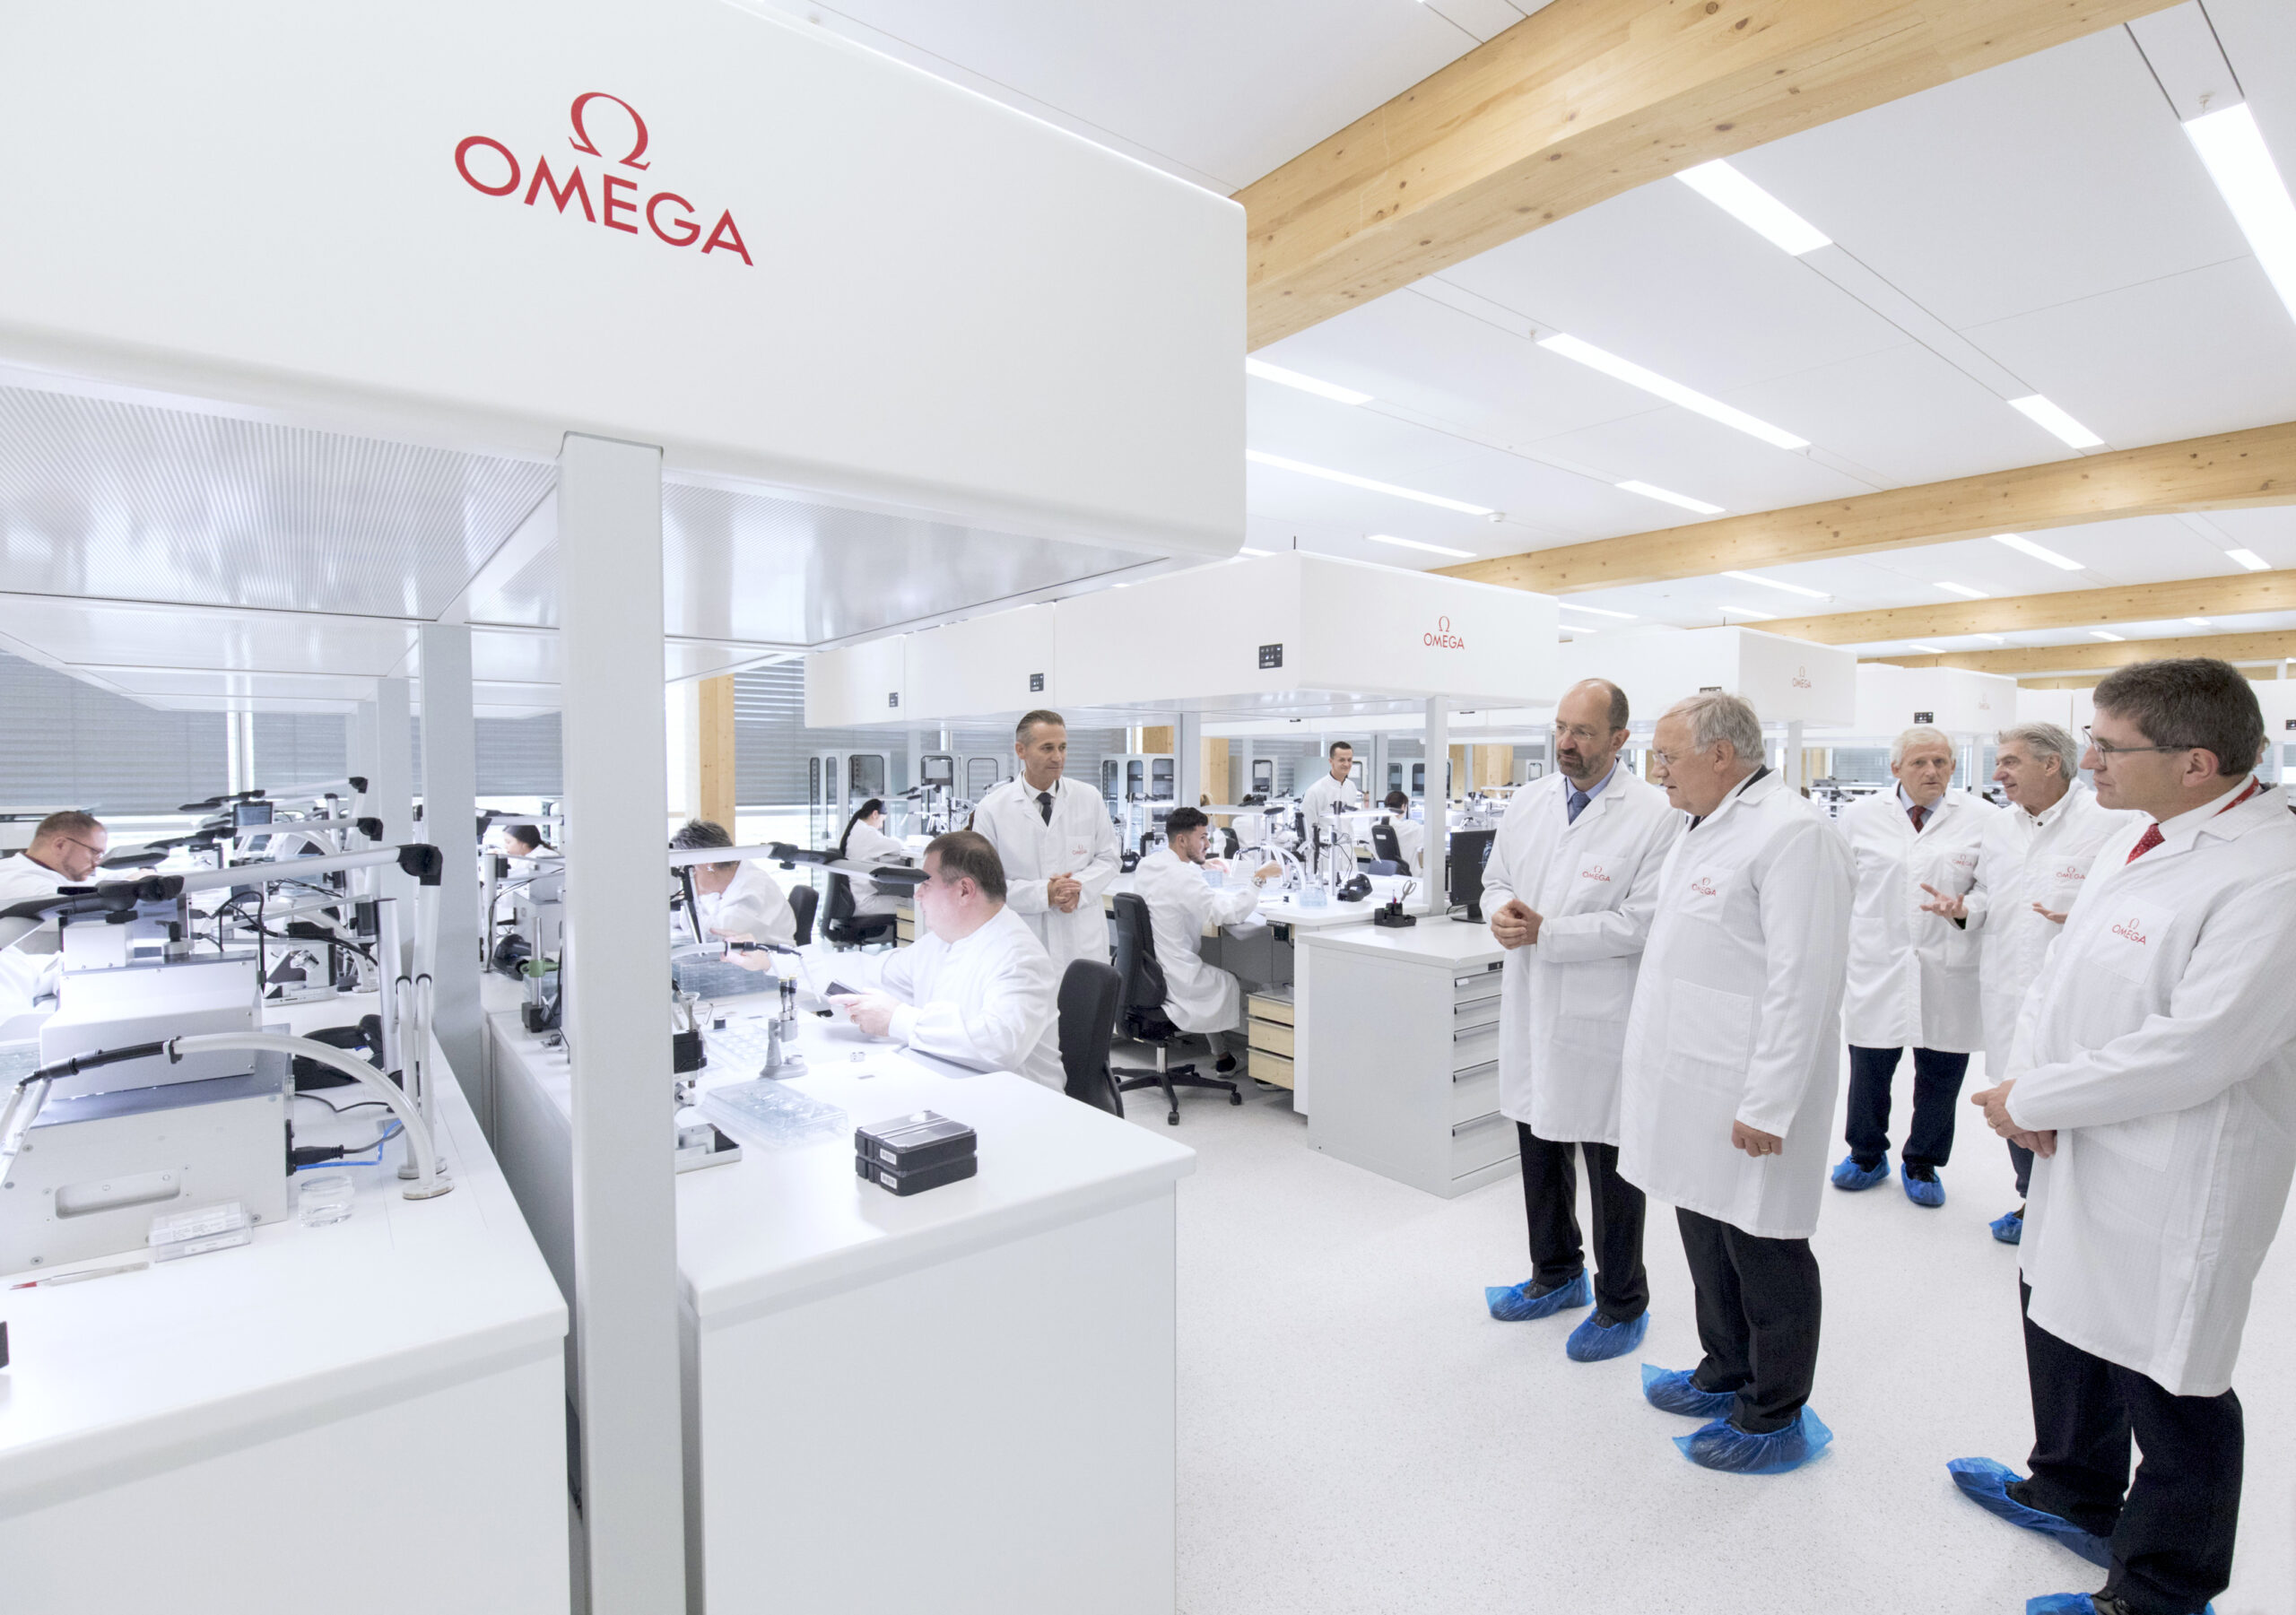 CEO of Swatch Group, Mr. Nick Hayek, the Head of the Federal Department of Economic Affairs, Education & Research (EAER), Mr. Johann N. Schneider-Ammann, the President and CEO of Omega, Raynald Aeschlimann and the Japanese architect, Shigeru Ban visiting the new factory